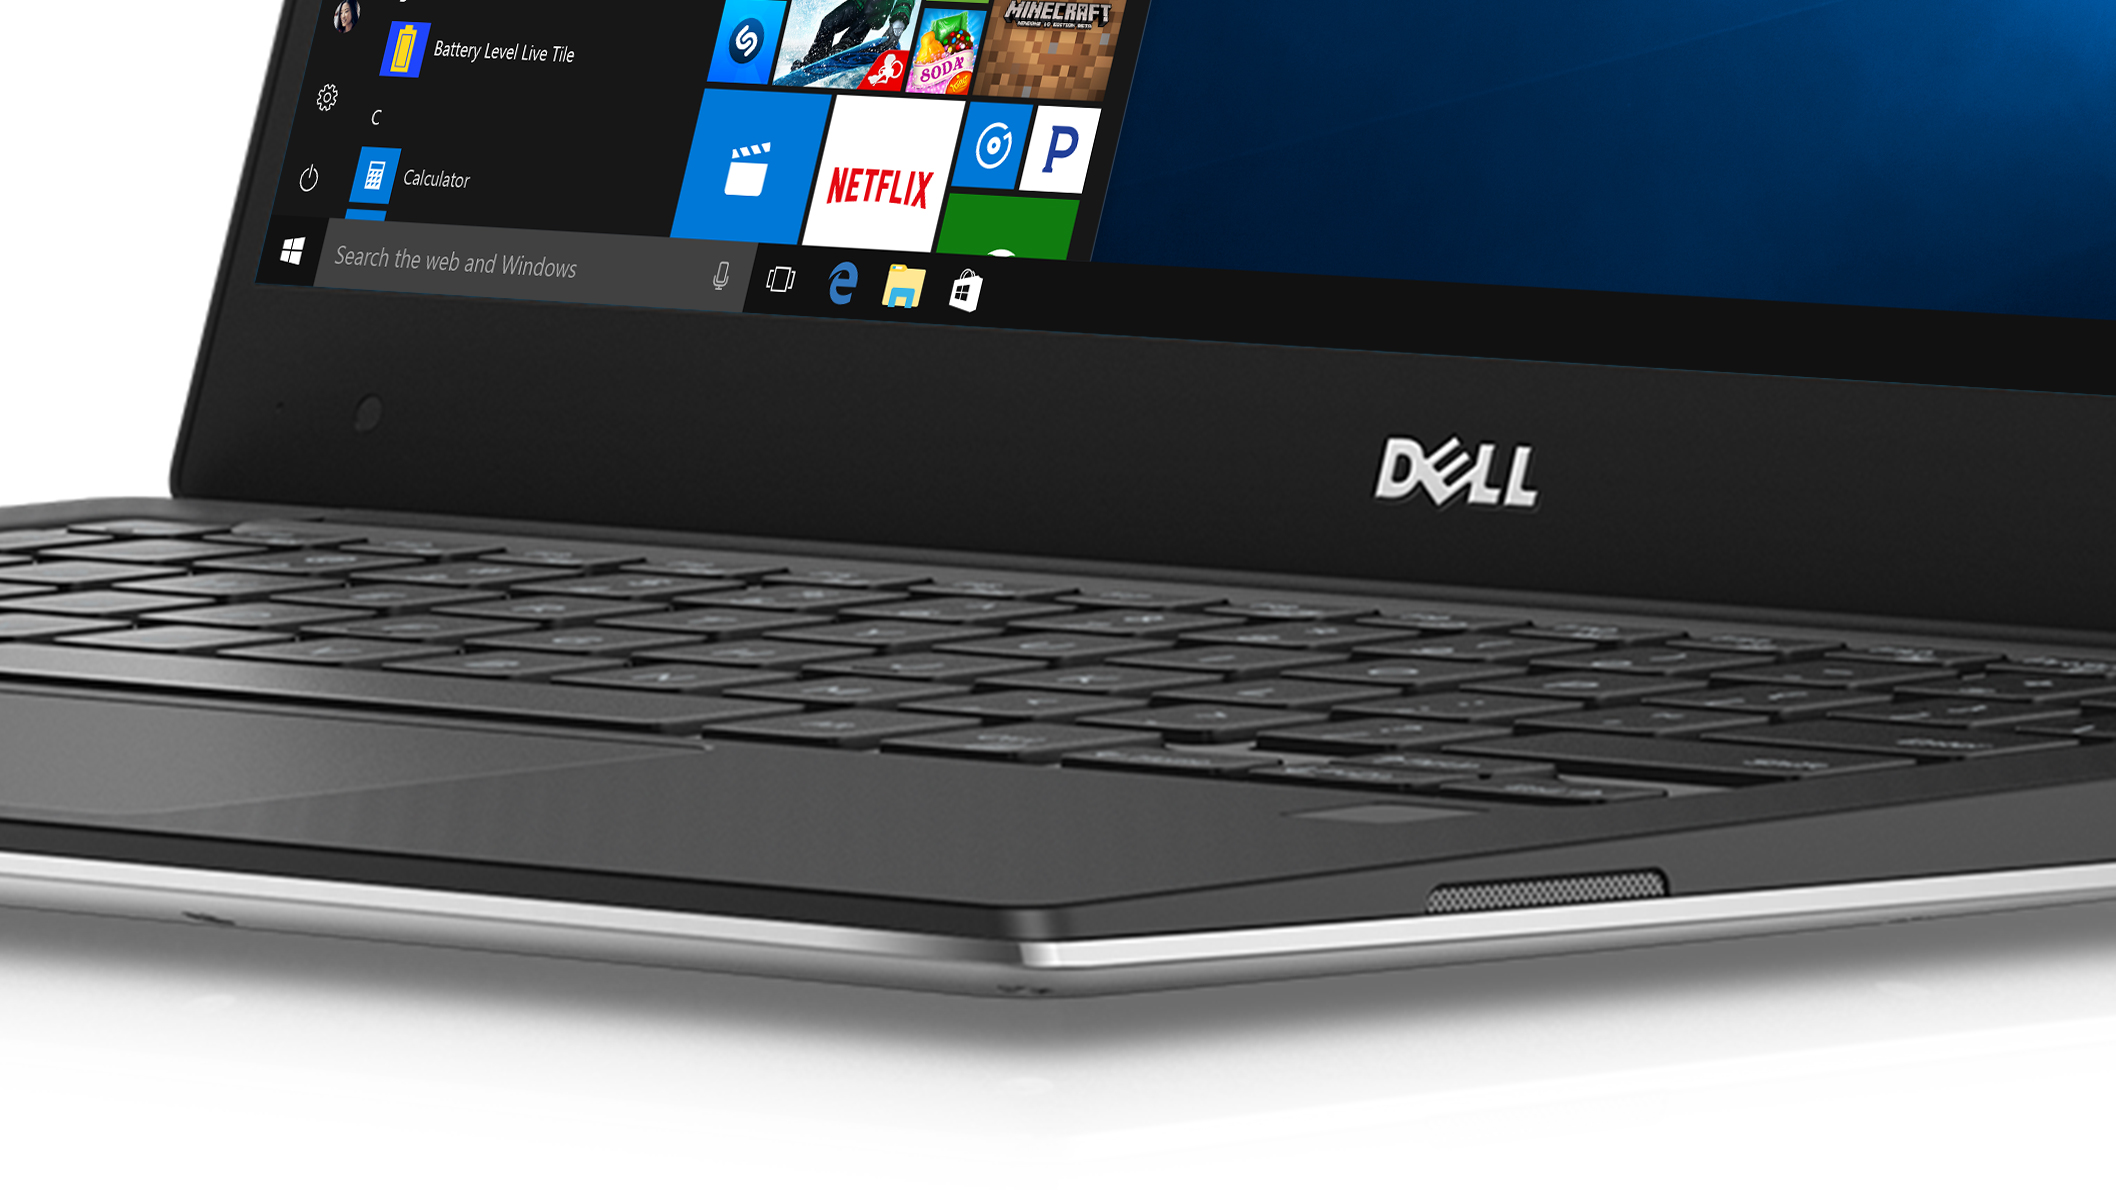 how to clear app cache on dell xps 13